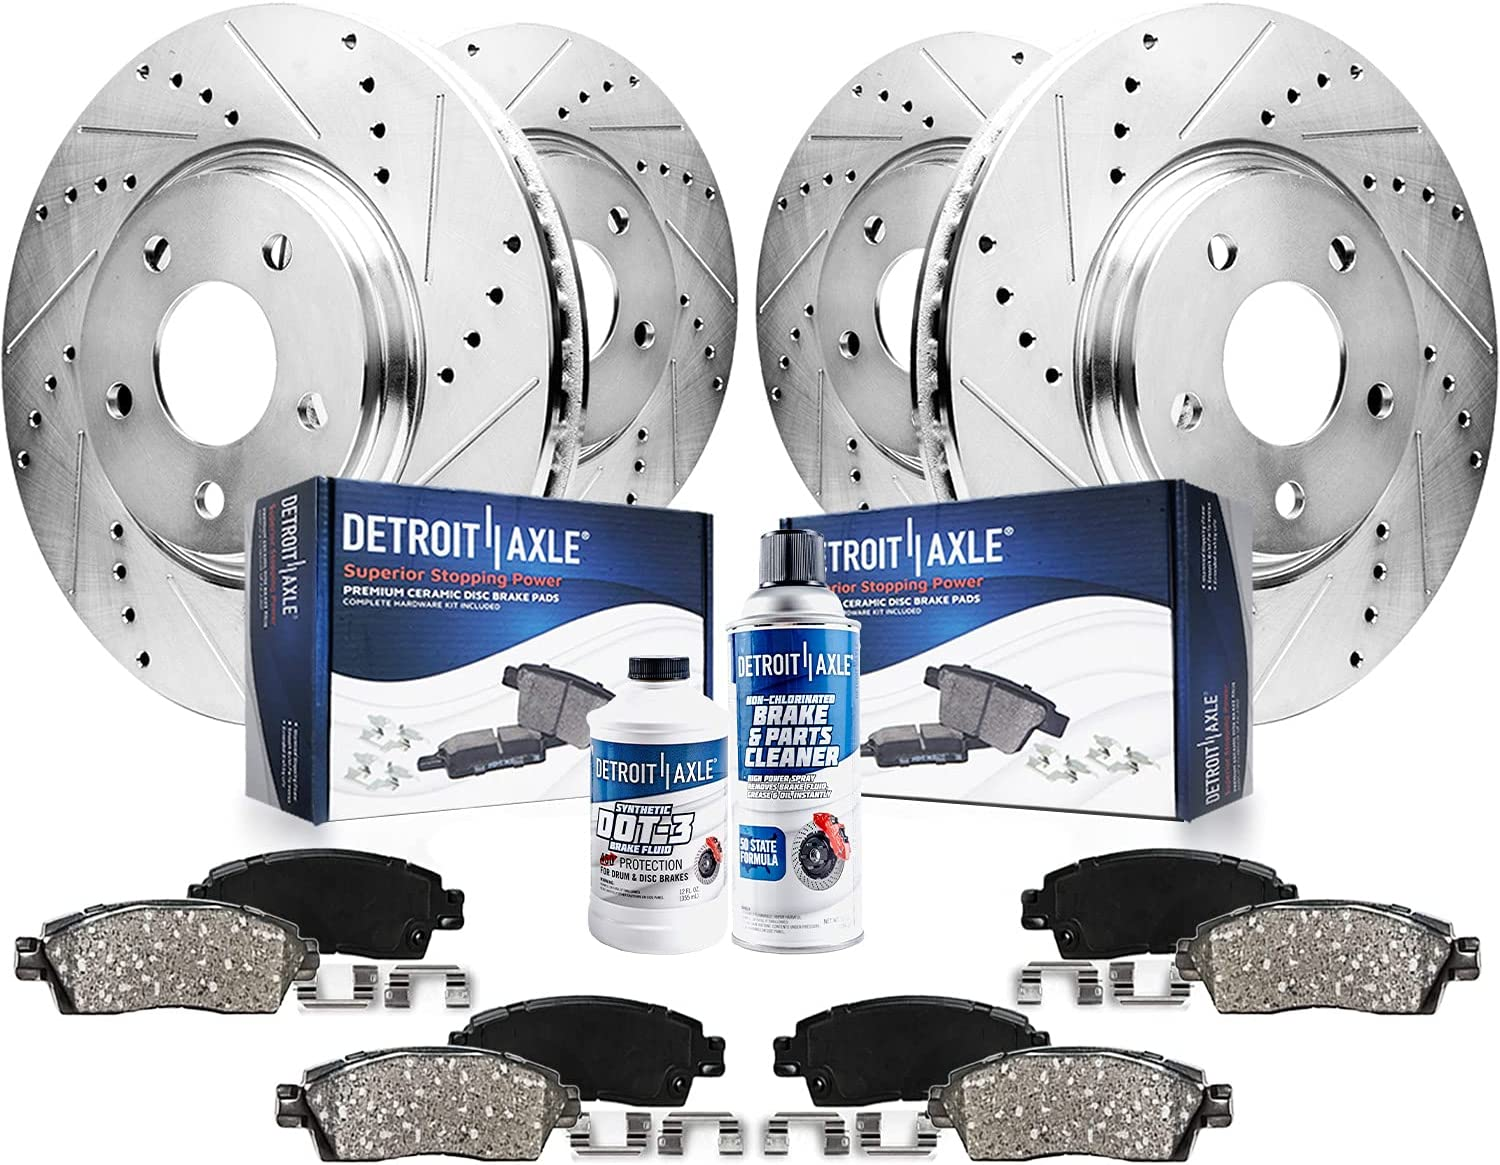 Detroit Axle safety - Front Rear Drilled Rot Slotted Disc service Brake Kit